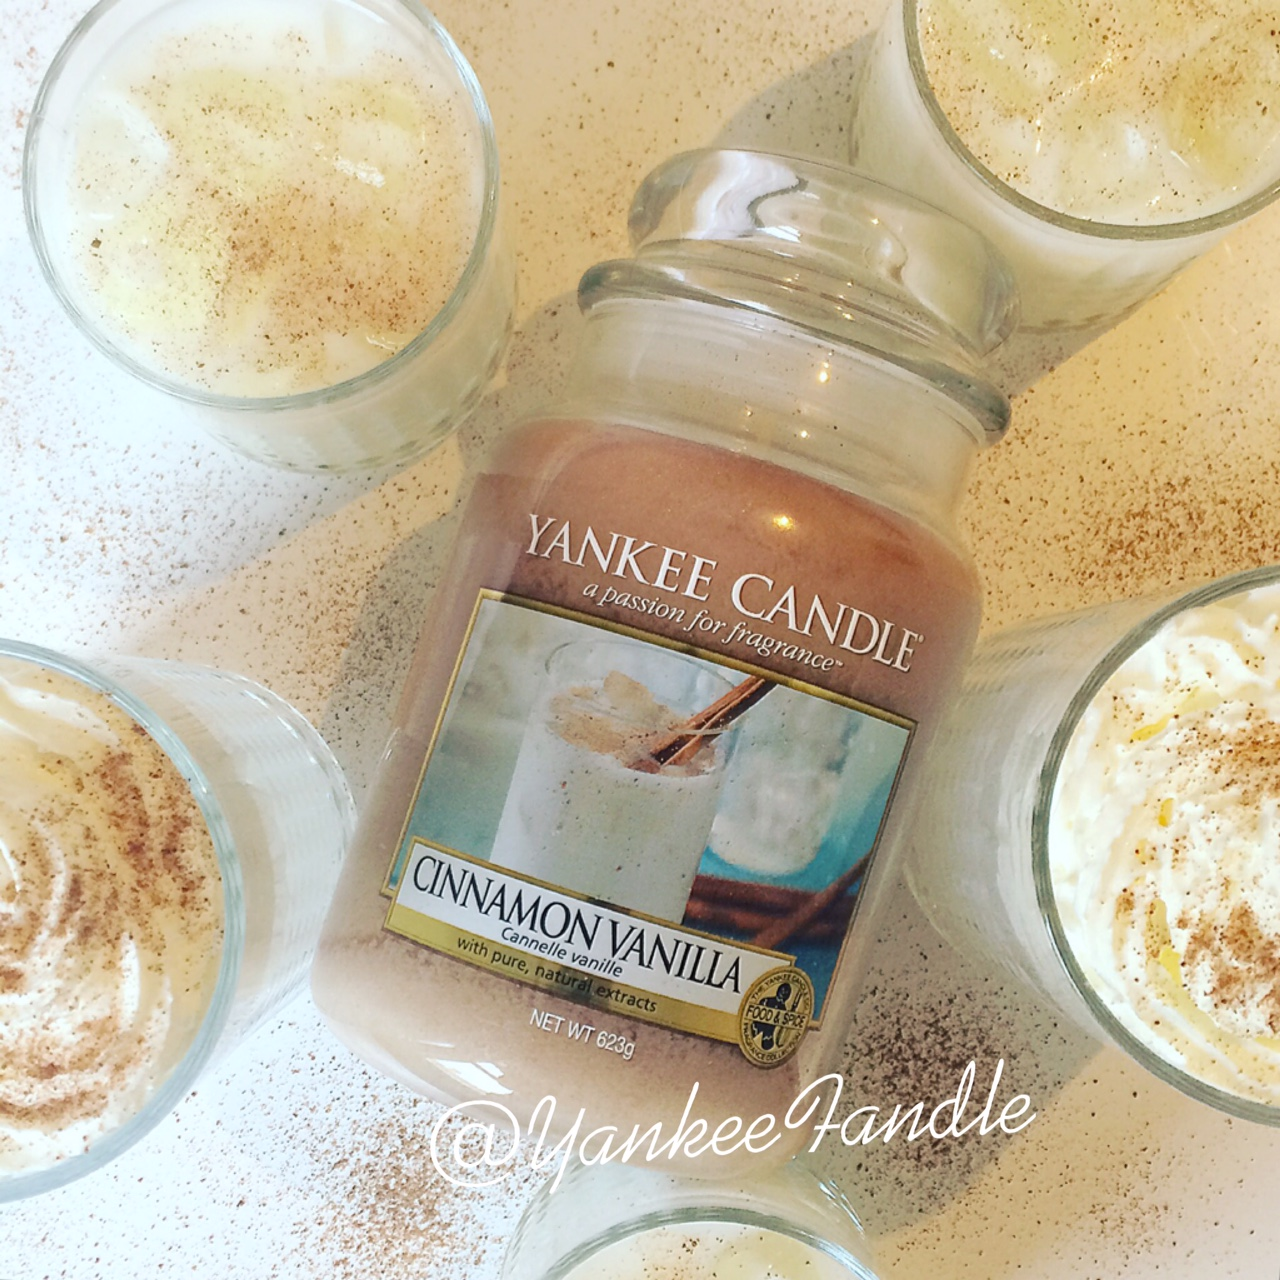 Yankee Fandle You Can Never Be Too Vanilla Natural Soy Wax Scented Candles Cinnamon Has A Real Spice To It The Unsurprisingly Makes So Many People Think Of Christmas But For Me Mix With